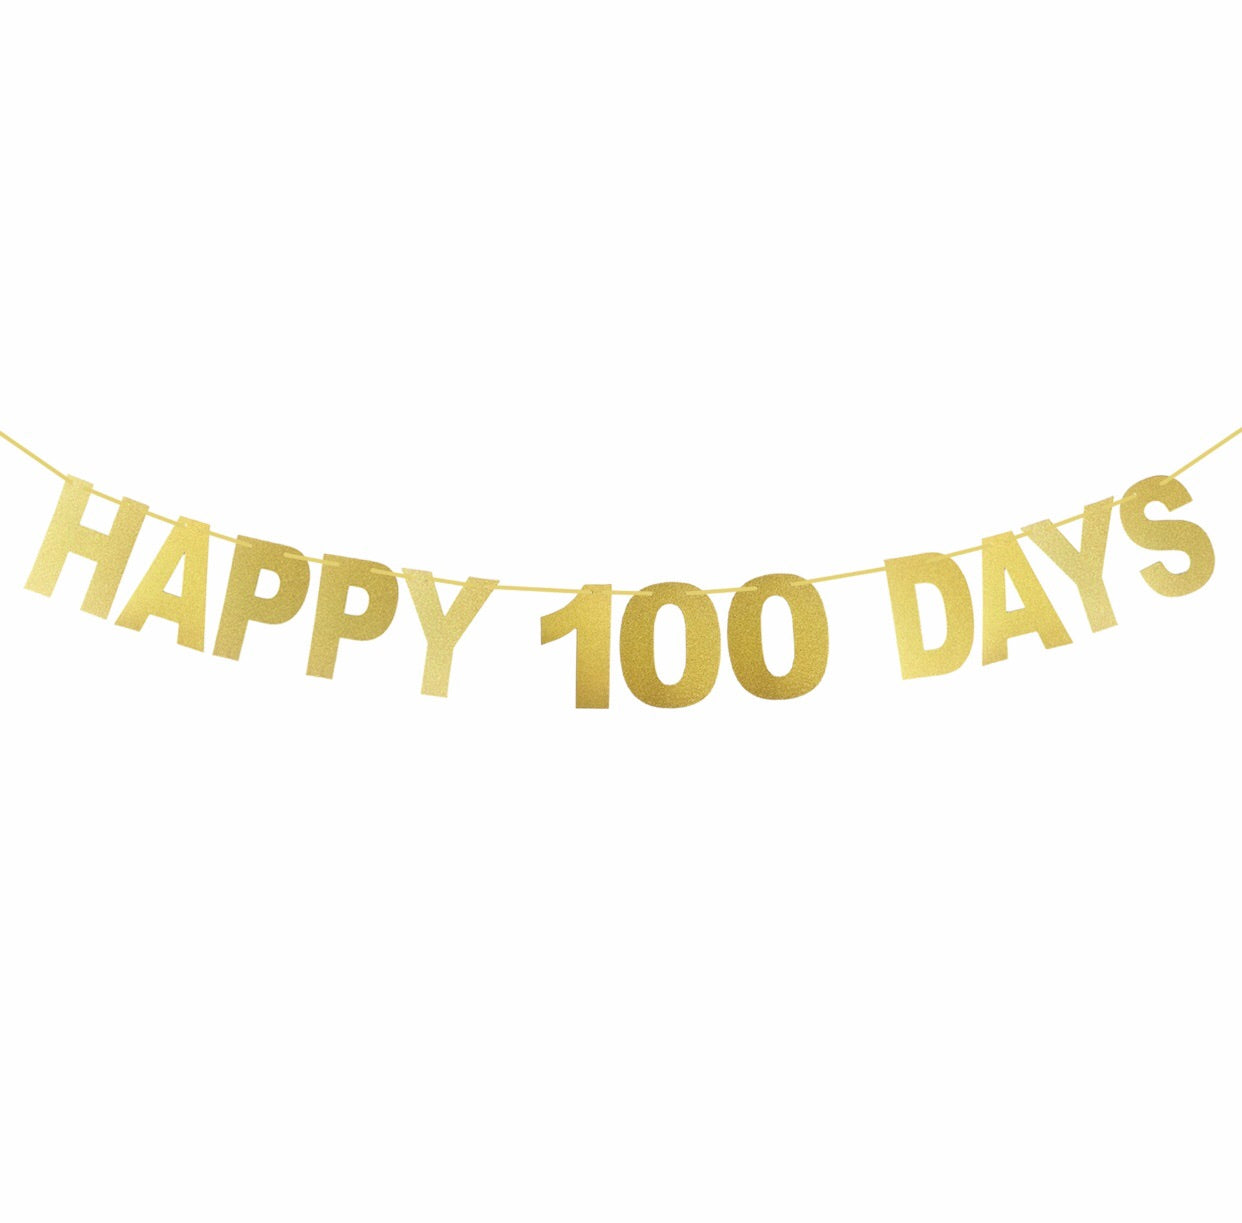 Happy 100 days